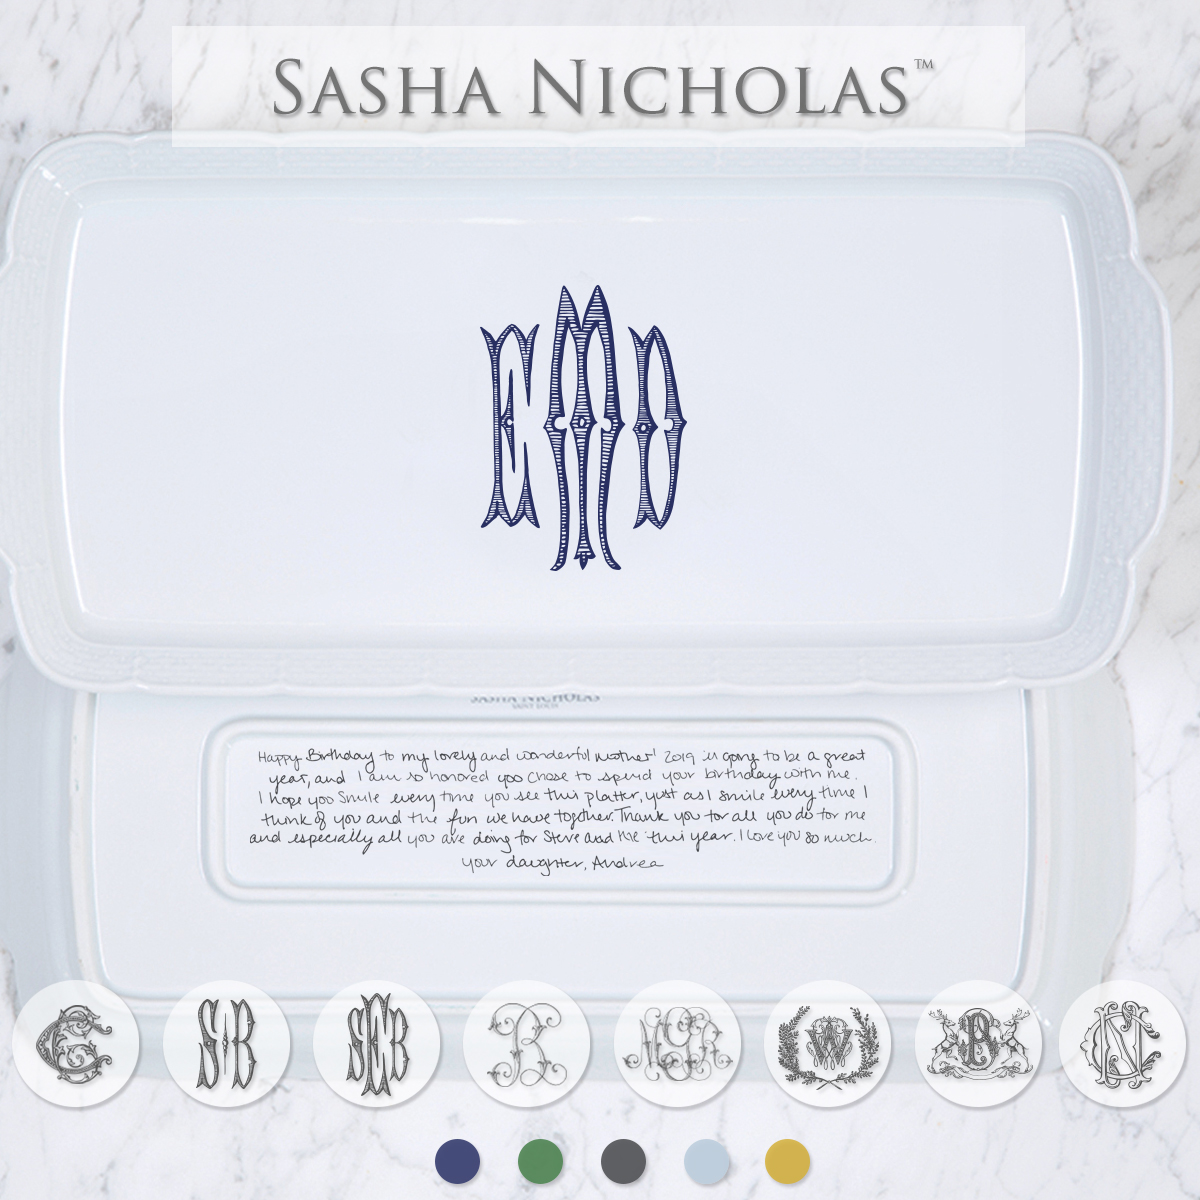 A beautiful addition to your dinnerware collection and to adorn your tablescapes with. It makes the perfect gift for your wedding registry with the included handwritten inscription on back. Choose from their signature font styles or use a custom monogram or crest of your choice! | Sasha Nicholas's white porcelain rectangle platter